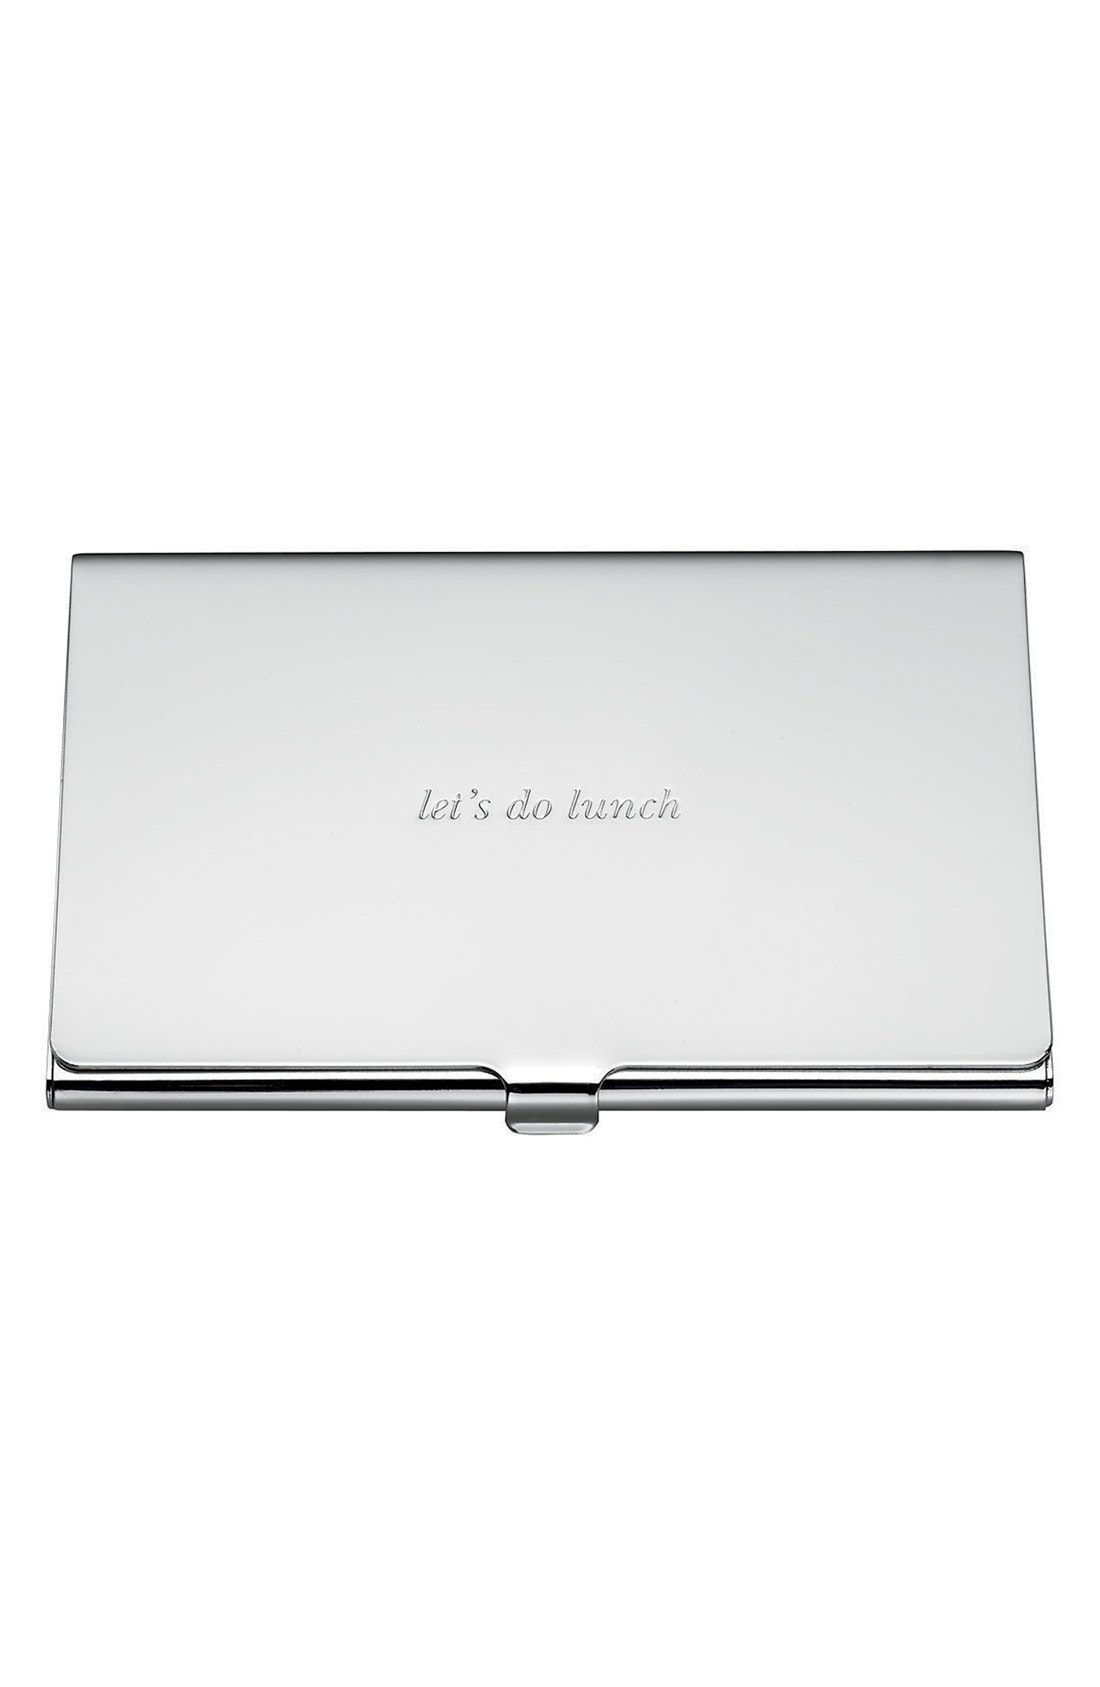 New kate spade new york let s do lunch business card holder fashion ...